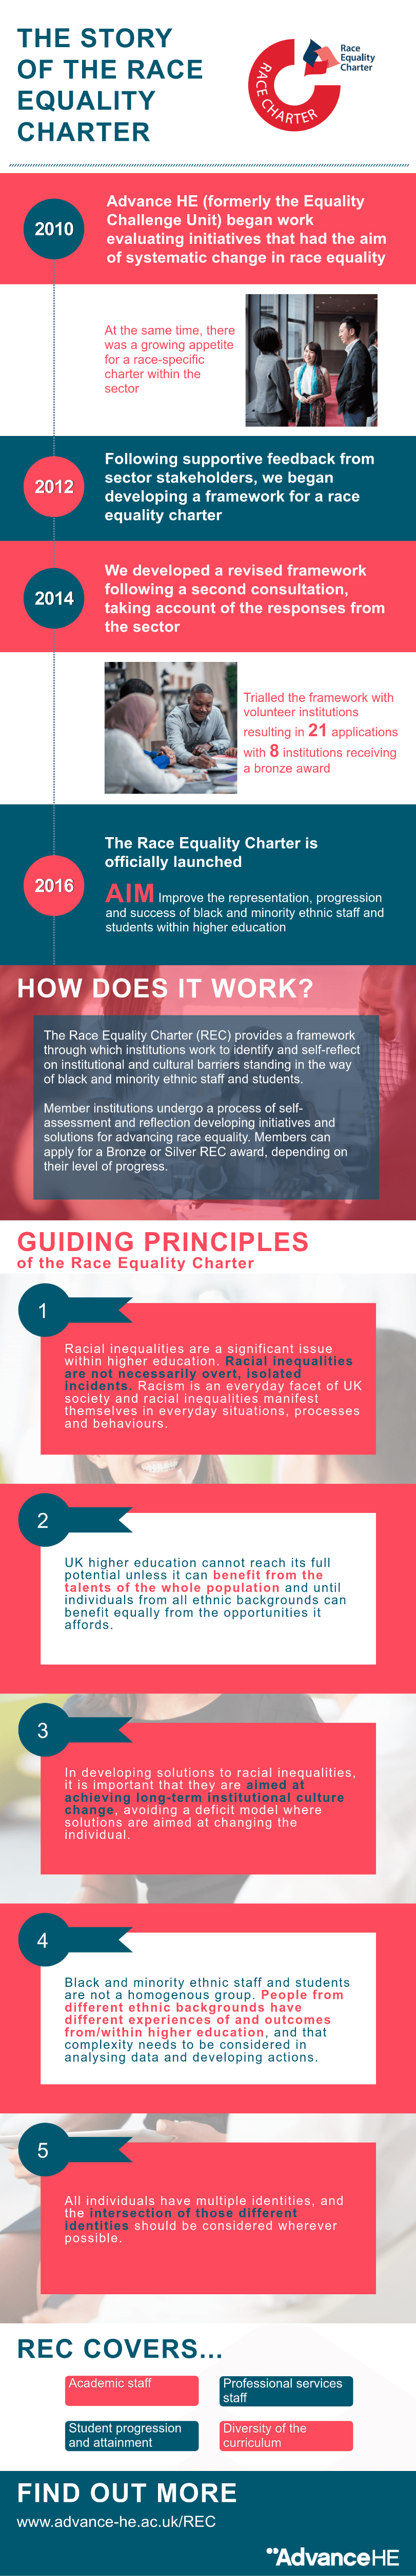 Infographic - Race Equality Charter (REC)